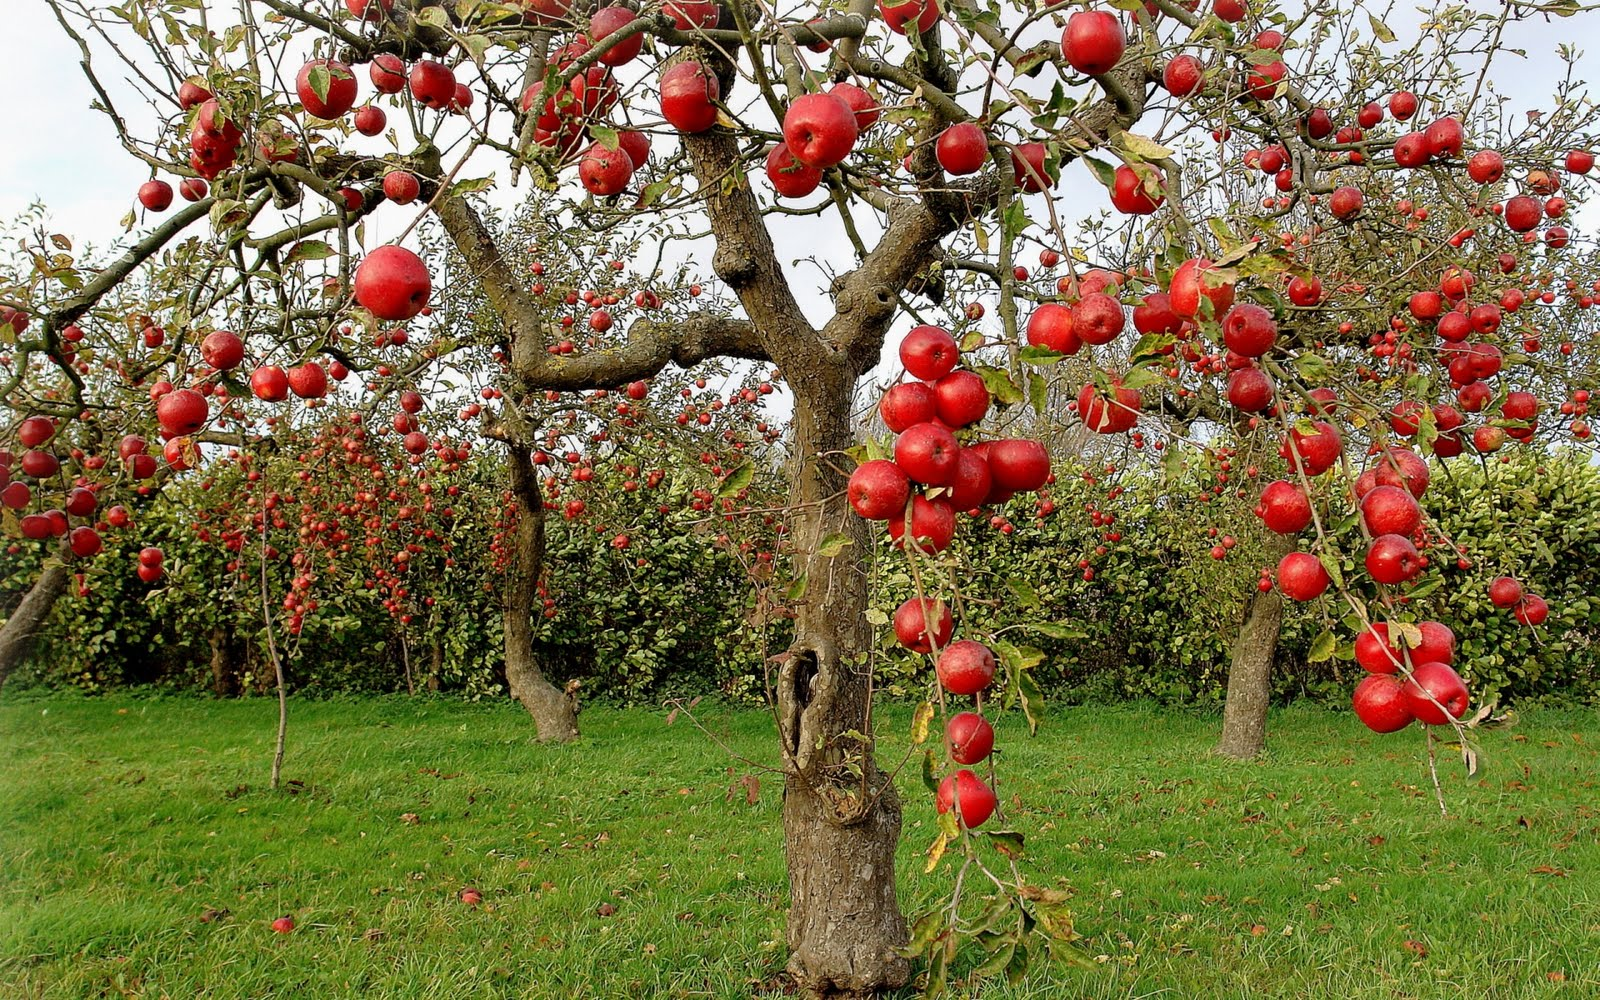 autumn-red-apples-1920x1200-manzanas-rojas-en-otoño